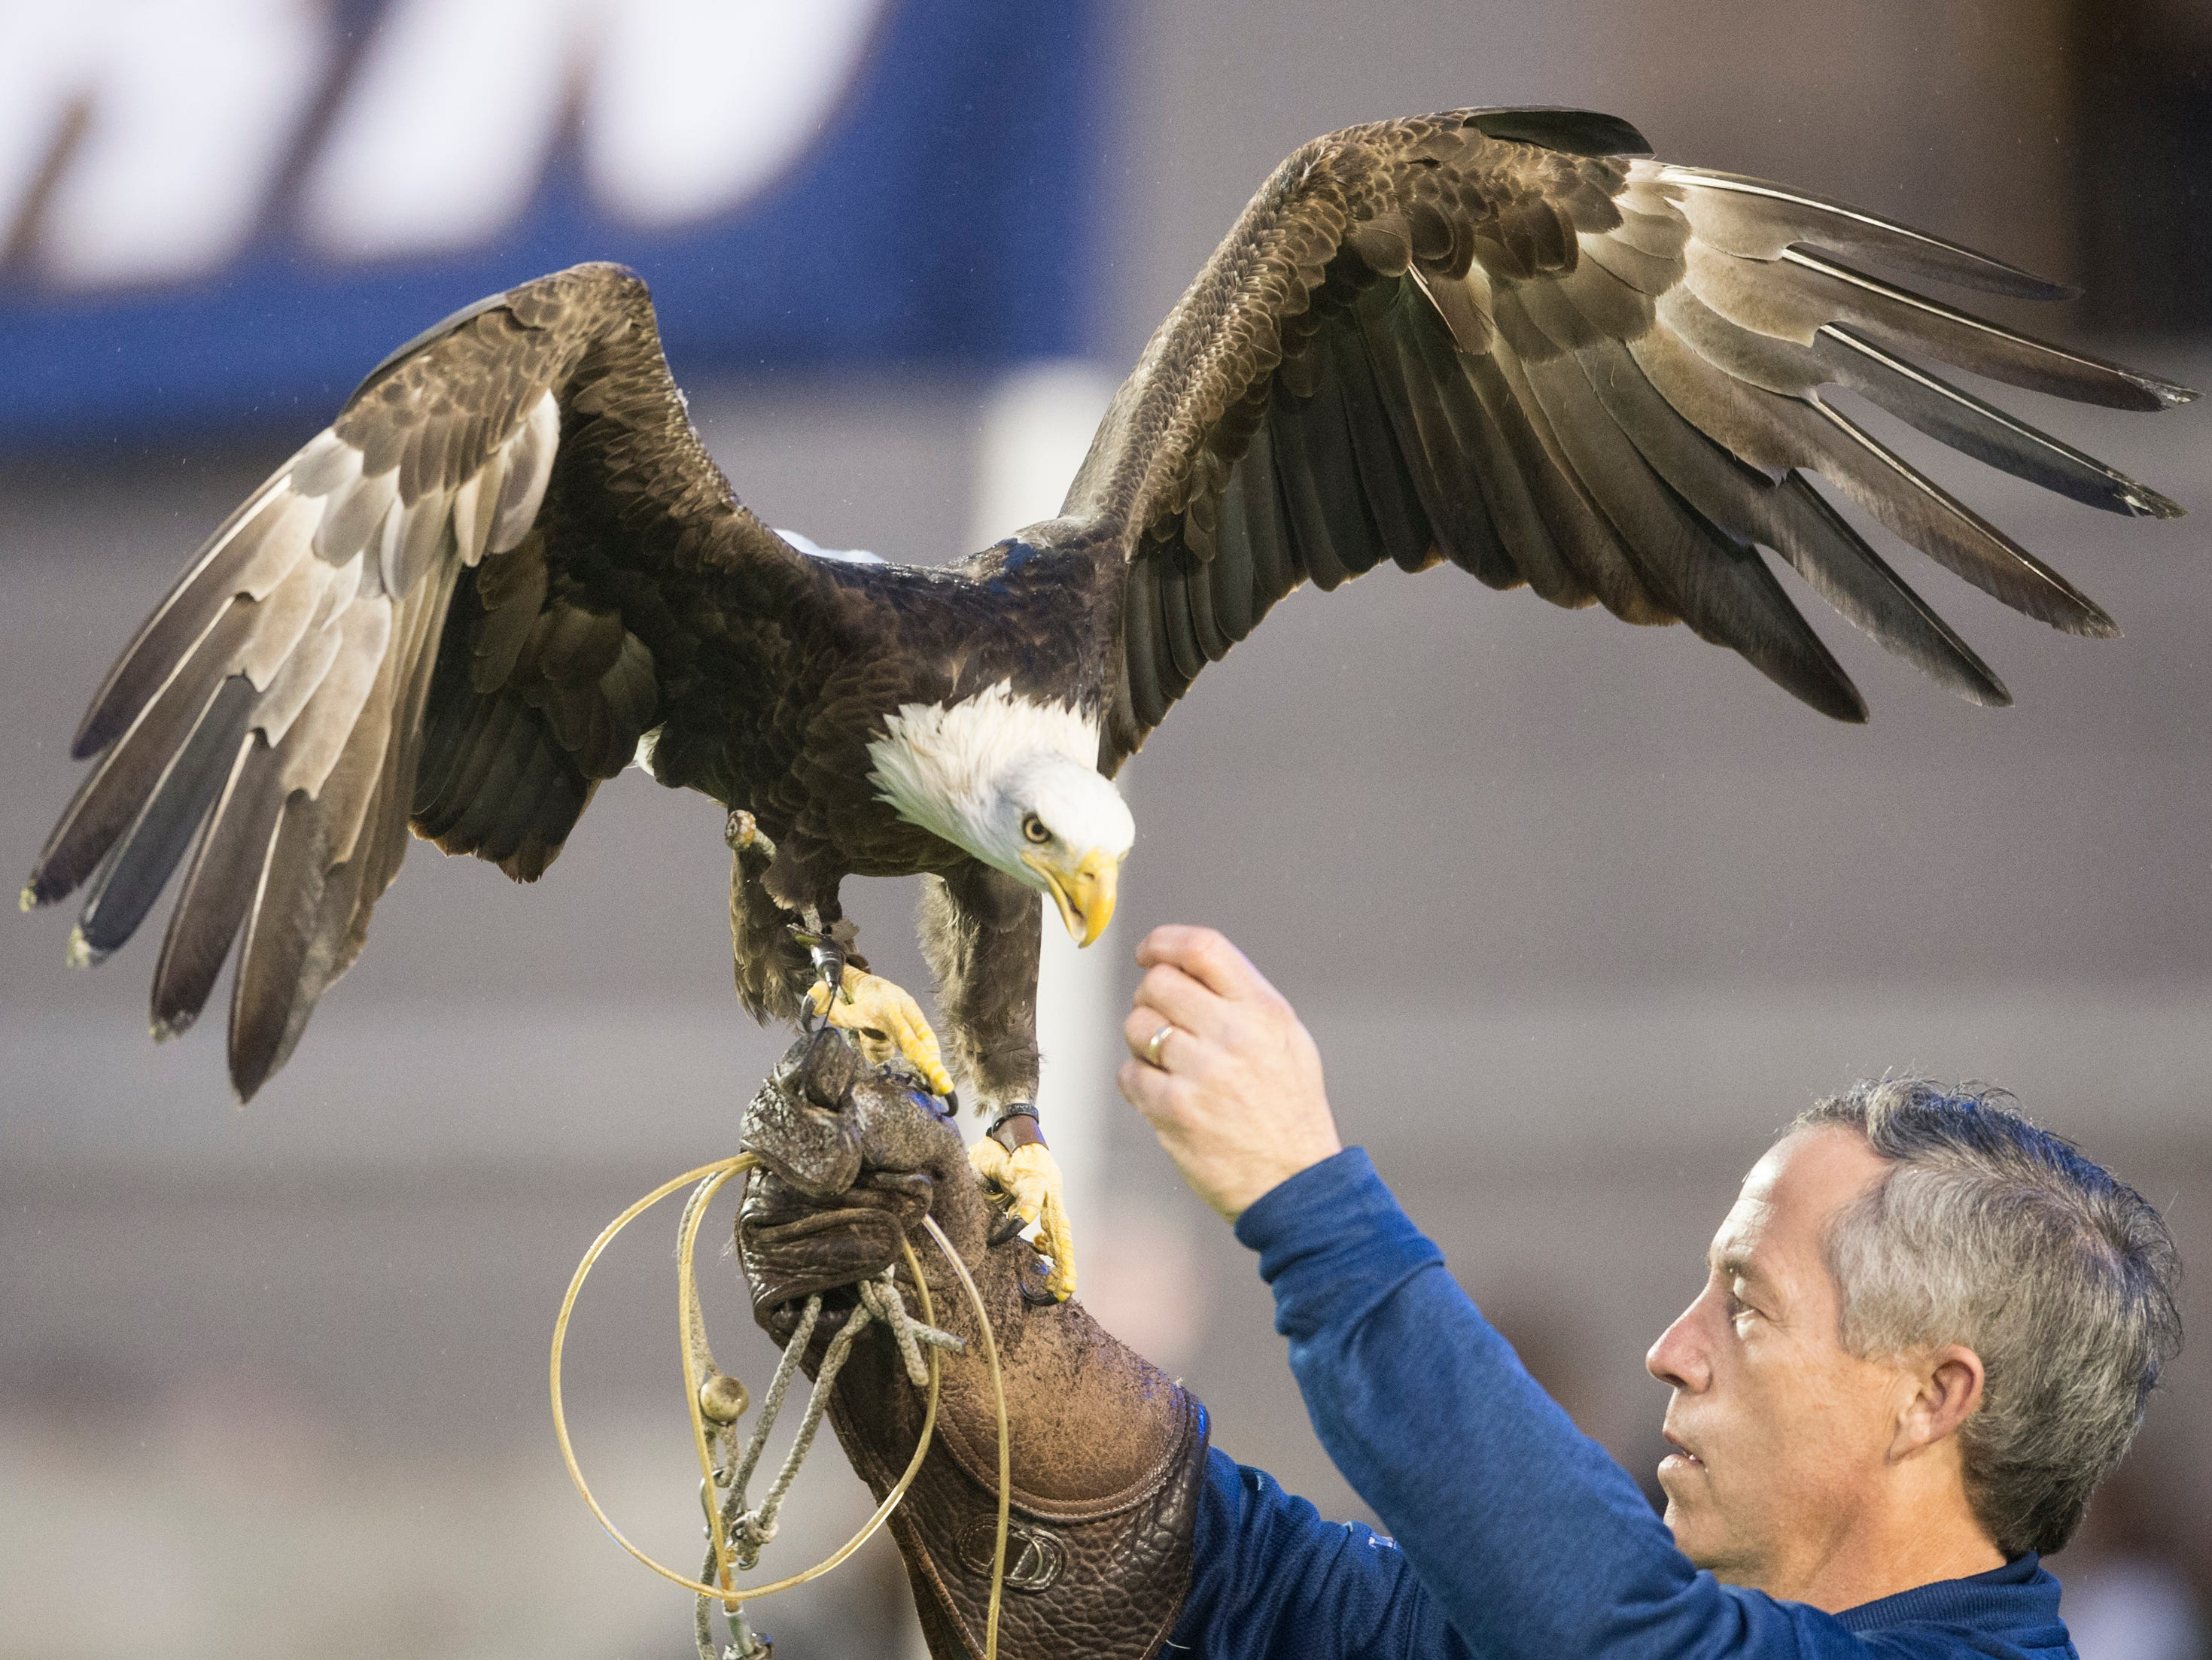 Georgia Southern's mascot, Freedom the bald eagle, walks out with his team before the Camellia Bowl at Cramton Bowl in Montgomery, Ala., on Saturday, Dec. 15, 2018. Georgia Southern leads Eastern Michigan 17-7 at halftime.